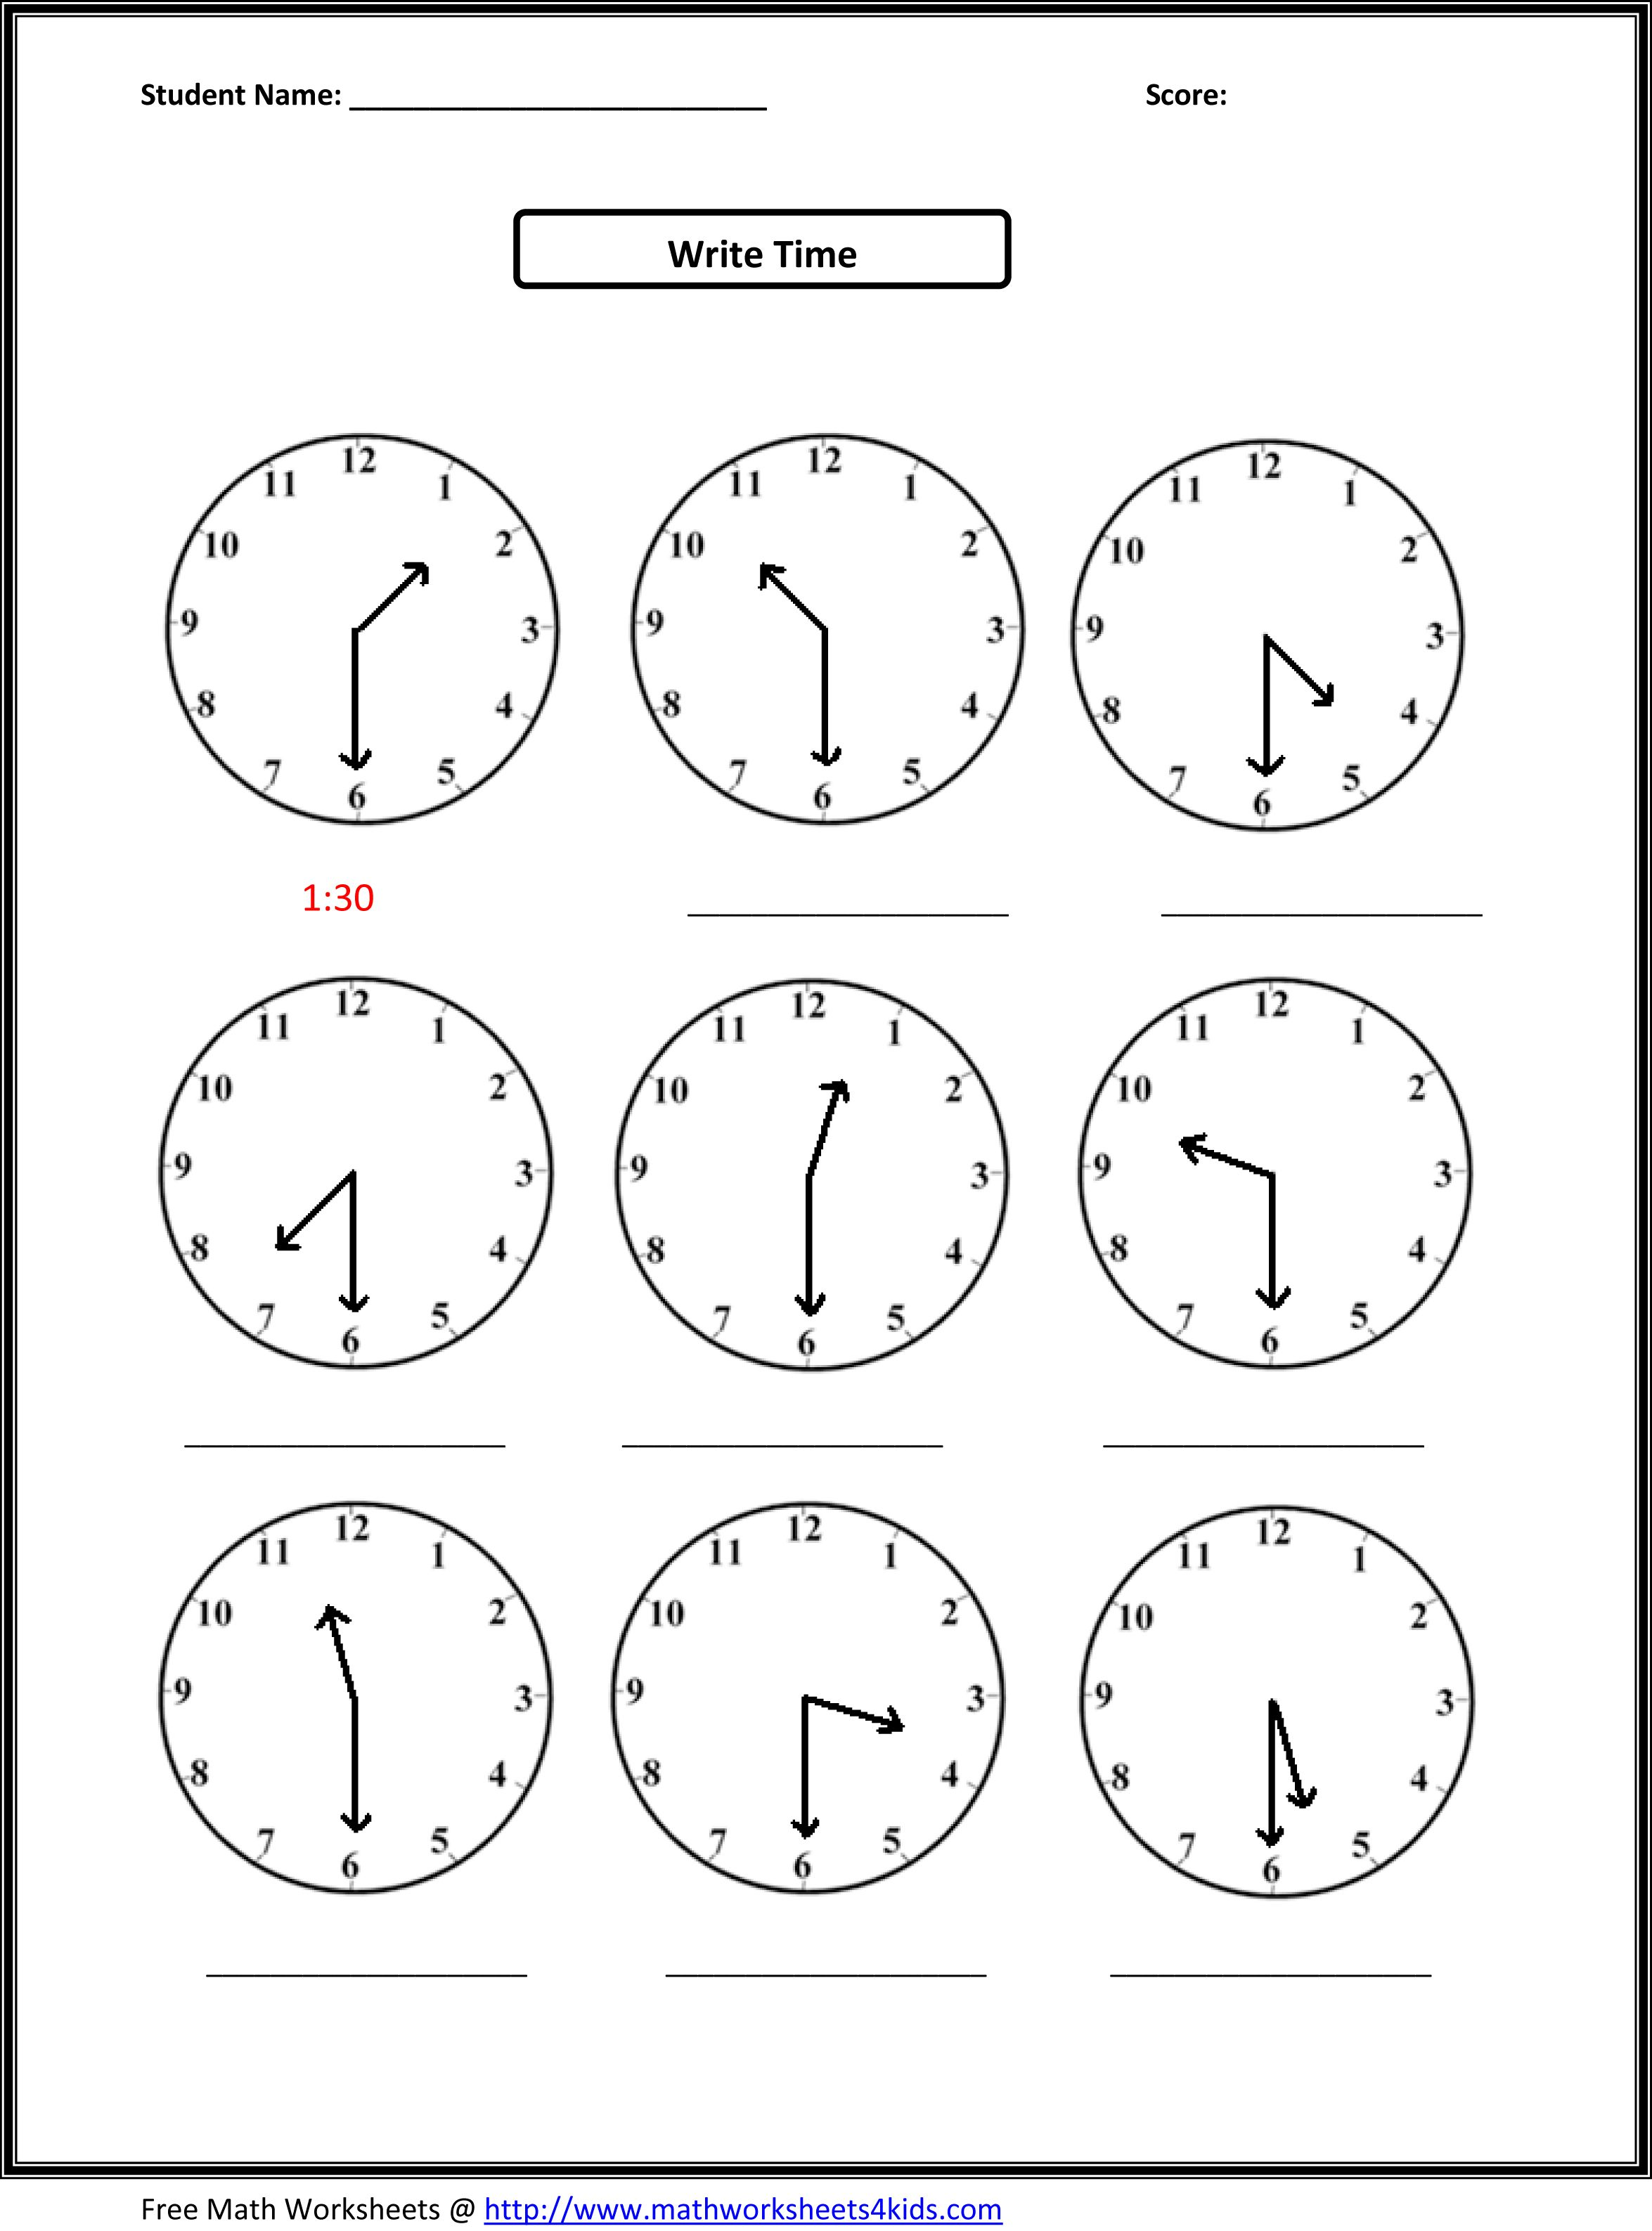 Weirdmailus  Personable Worksheet On Time For Grade   Reocurent With Engaging Free Printable Telling Time Worksheets Nd Grade  Reocurent With Amazing Solving For A Variable Worksheet Also Th Grade Fraction Worksheets In Addition Multiply Decimals Worksheet And Prewriting Worksheets As Well As Articulation Worksheets Additionally Properties Of Atoms And The Periodic Table Worksheet Answers From Reocurentcom With Weirdmailus  Engaging Worksheet On Time For Grade   Reocurent With Amazing Free Printable Telling Time Worksheets Nd Grade  Reocurent And Personable Solving For A Variable Worksheet Also Th Grade Fraction Worksheets In Addition Multiply Decimals Worksheet From Reocurentcom